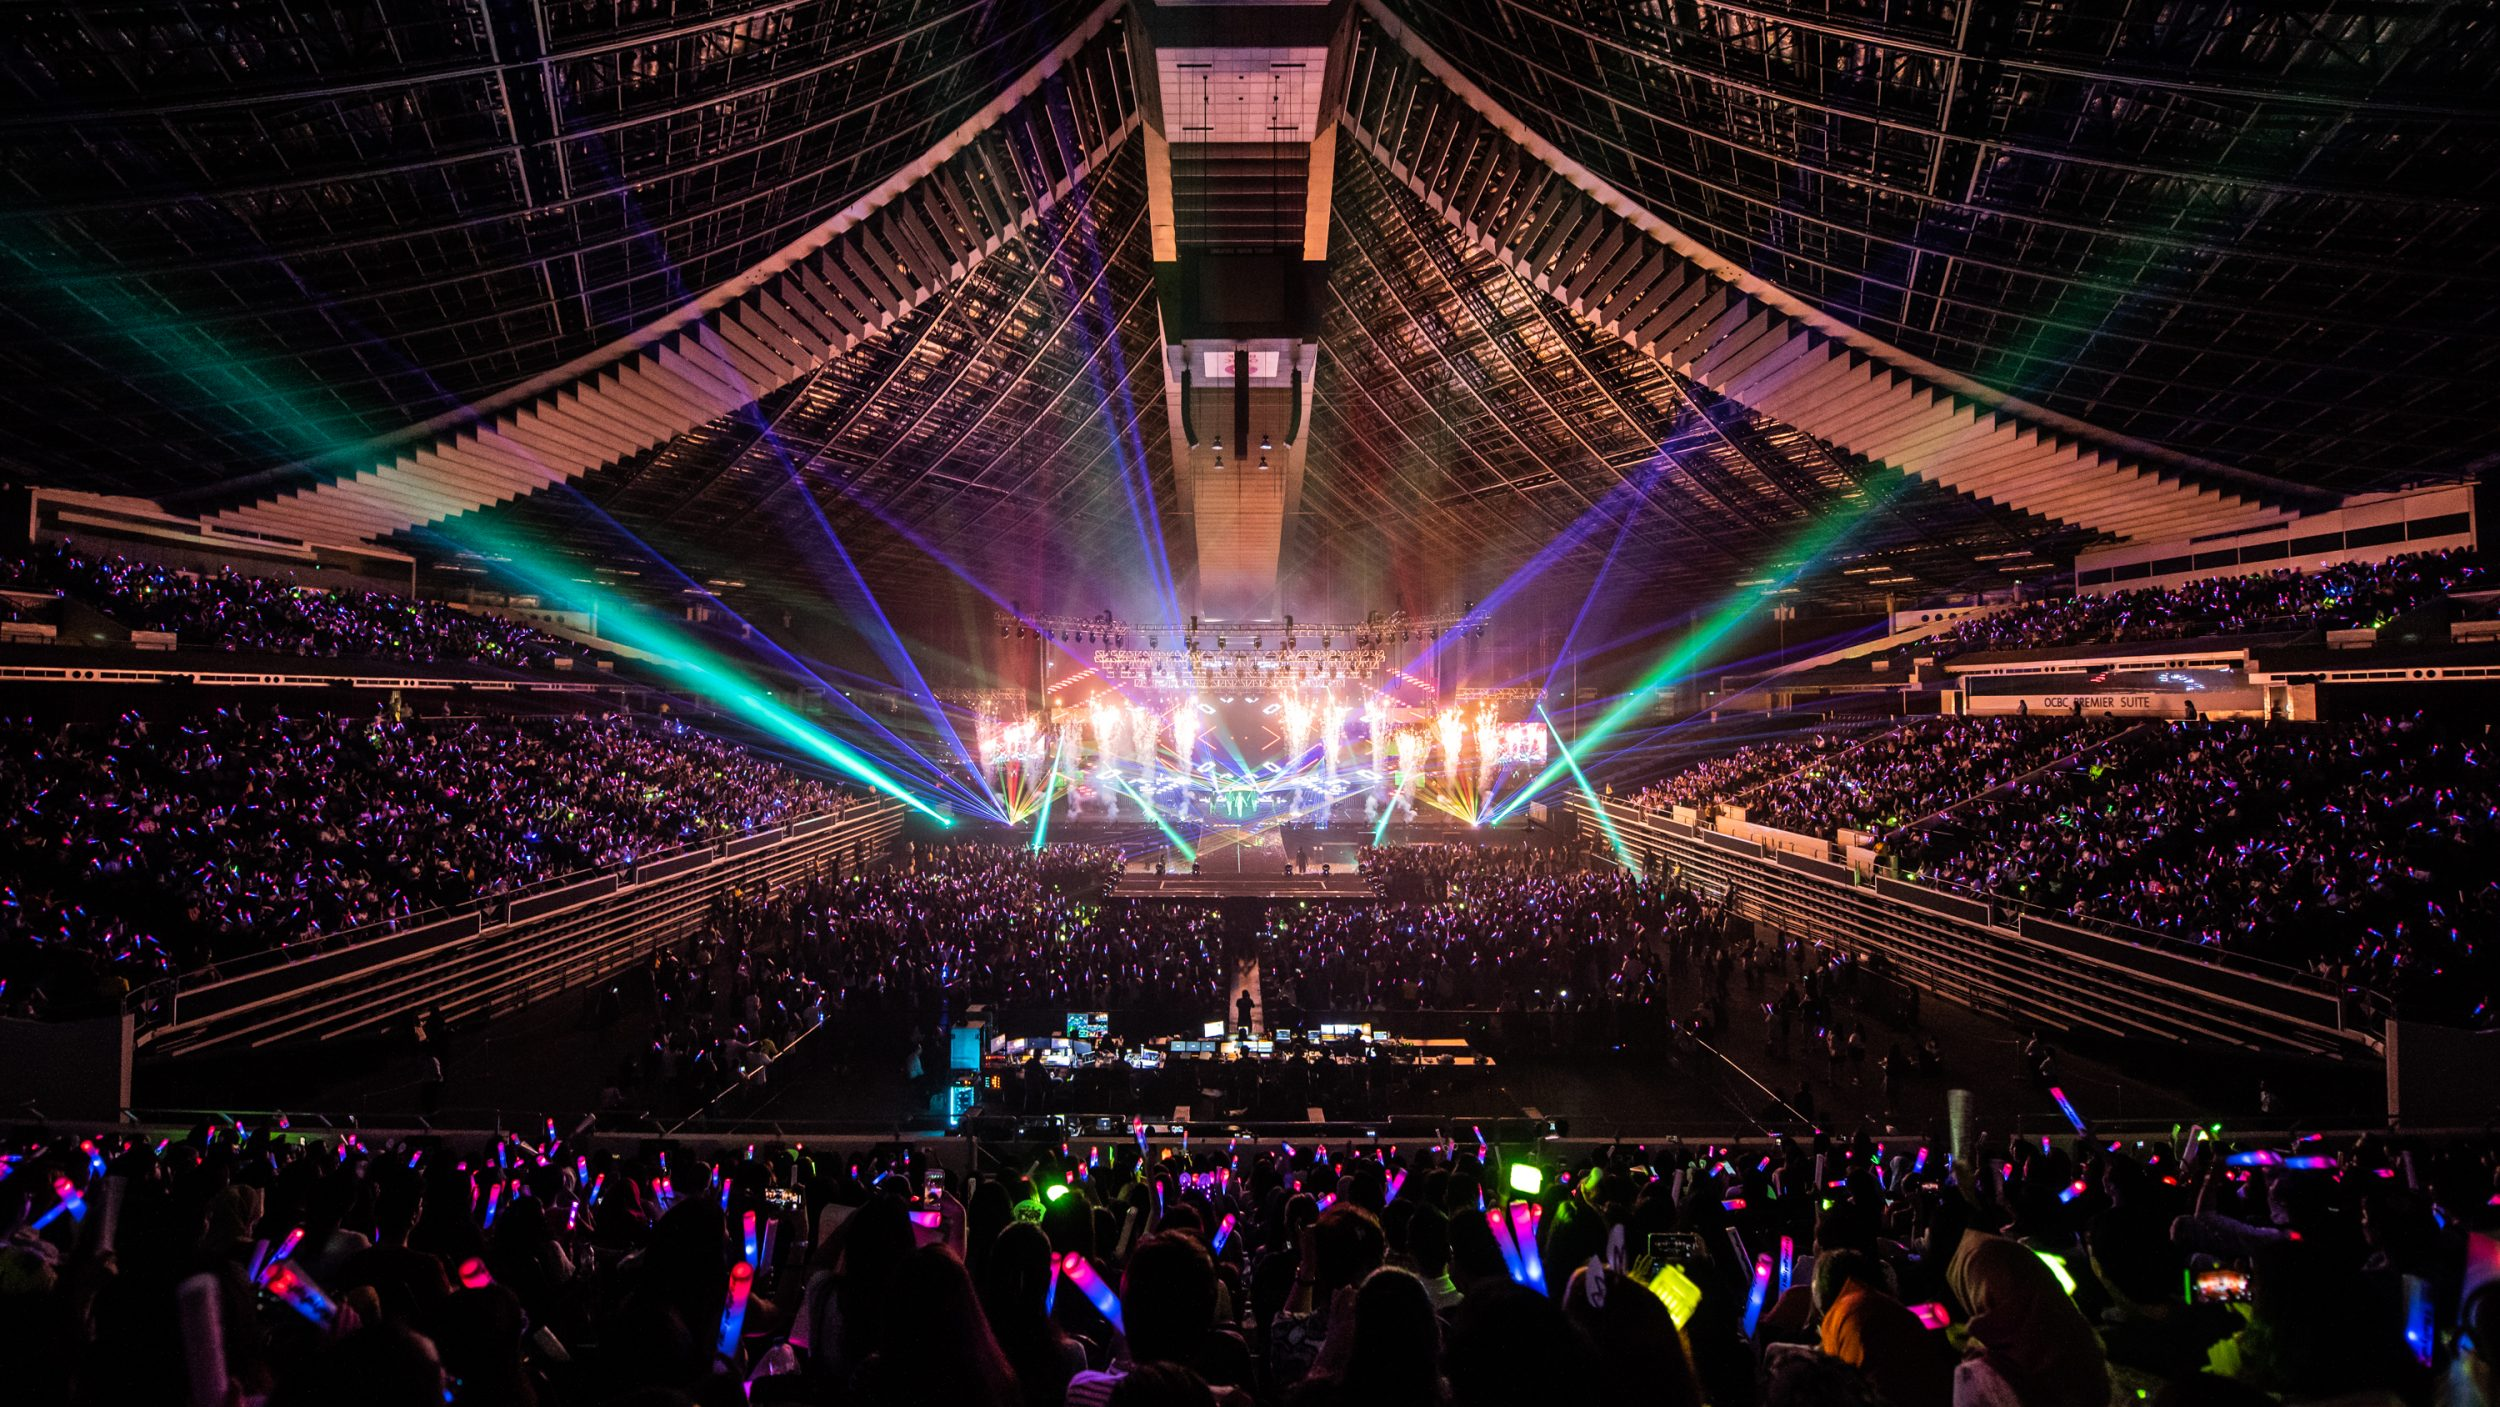 HallyuPopFest 2018 in Singapore, which featured over 100 K-pop artistes over the course three days.